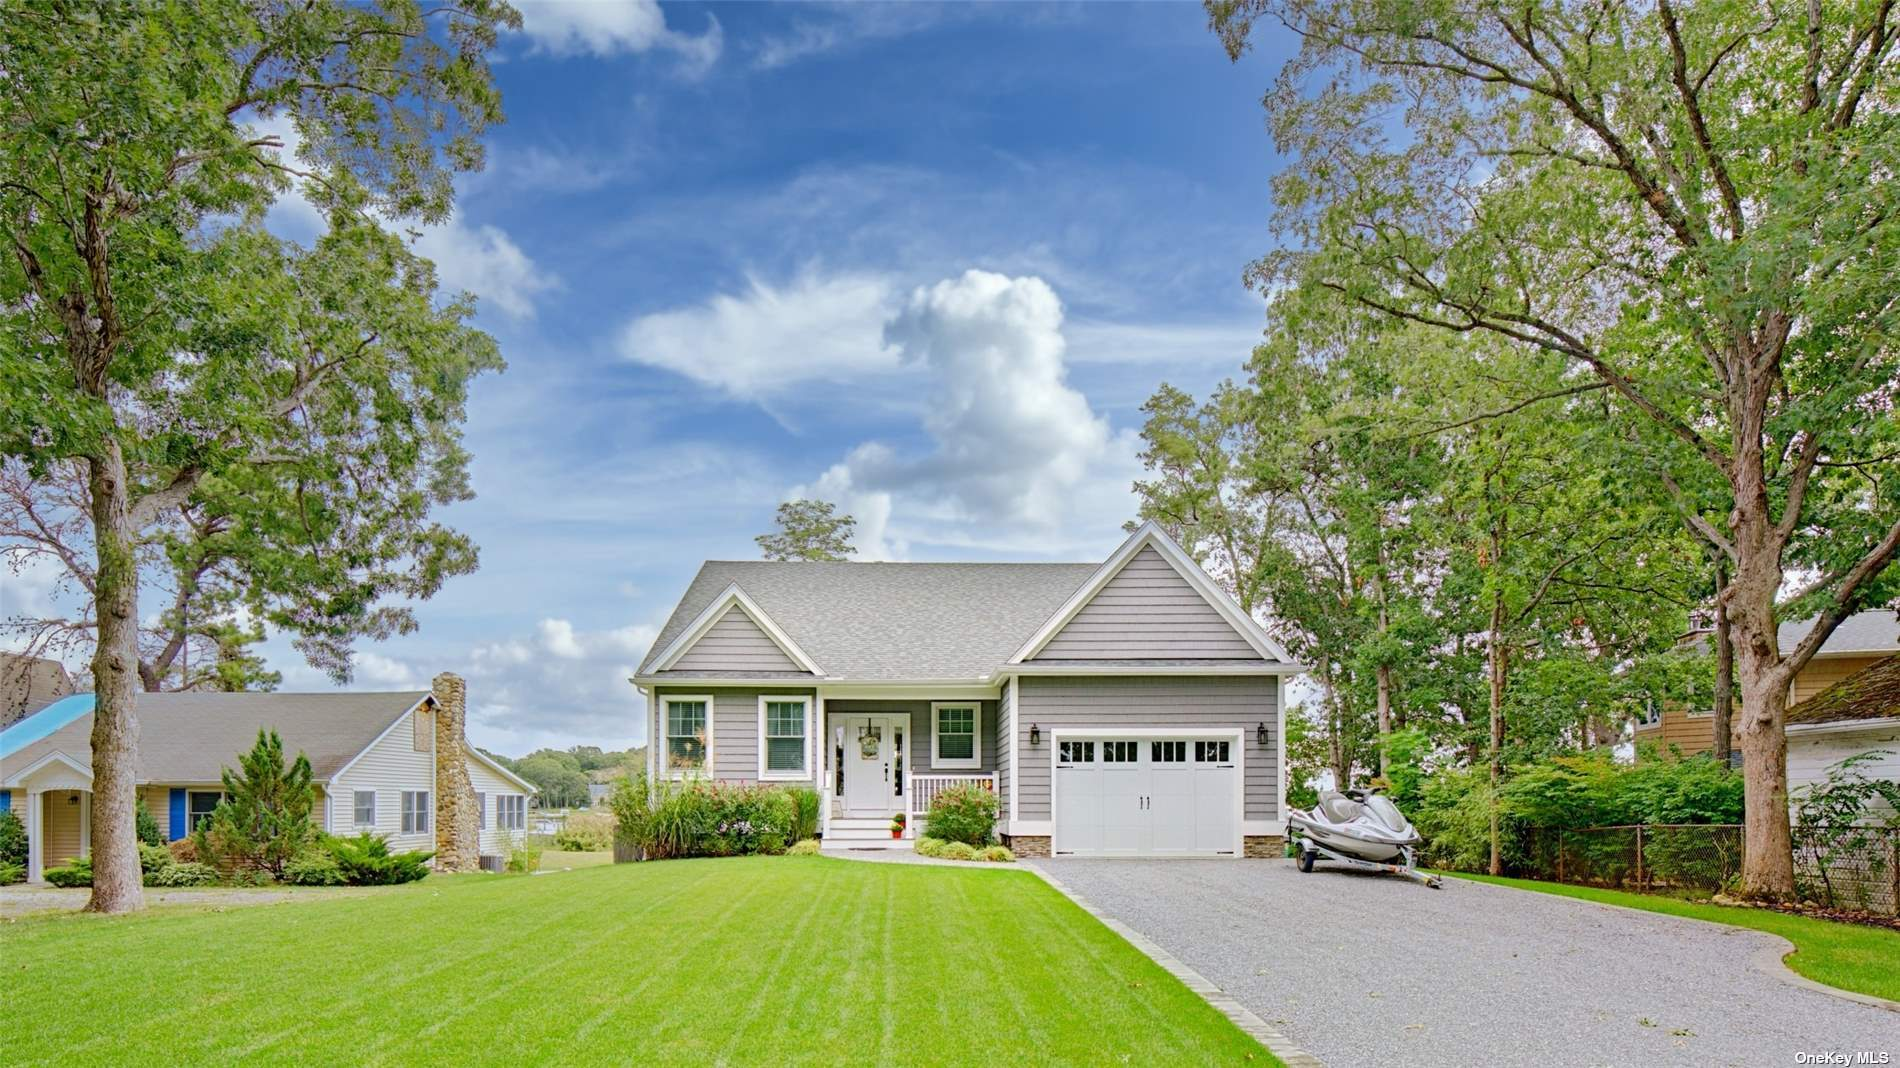 An Exceptional Aquebogue 2019' Beachfront Masterpiece in the Heart of Long Islands Wine Country. 96' of Sandy Waterfront, Private Mooring and Stunning Views of the Peconic Bay, This Well-Appointed, Architects Custom Ranch Was Mindfully Designed and Built to Facilitate a Premier East End Lifestyle. Exterior Curb and Grounds are Highlighted by a Curated use of Stacked Stone and Cedar Impression Siding. Enter Into an Open and Flowing Concept with Doublewide Reception and Hall. Gleaming Hardwoods Guide You Into a Gourmet Chef's Kitchen and Entertainer's Living Space Wrapped in Anderson 400 series Windows and Doors, Gas Fireplace and Uninterrupted Views of the Peconic Bay. Master Suite with Walk-In Closet and Adjoining jack and Jill Nursery Suite or Office. Two Guest Bedrooms off Main Hall Serviced by Oversized Guest Bathroom. Egress to private outdoor shower and 32'x12 Timbertech Deck overlooking Beach and Bay. *Additional 980 Sqft for Potential Second Story Addition! A Must See!